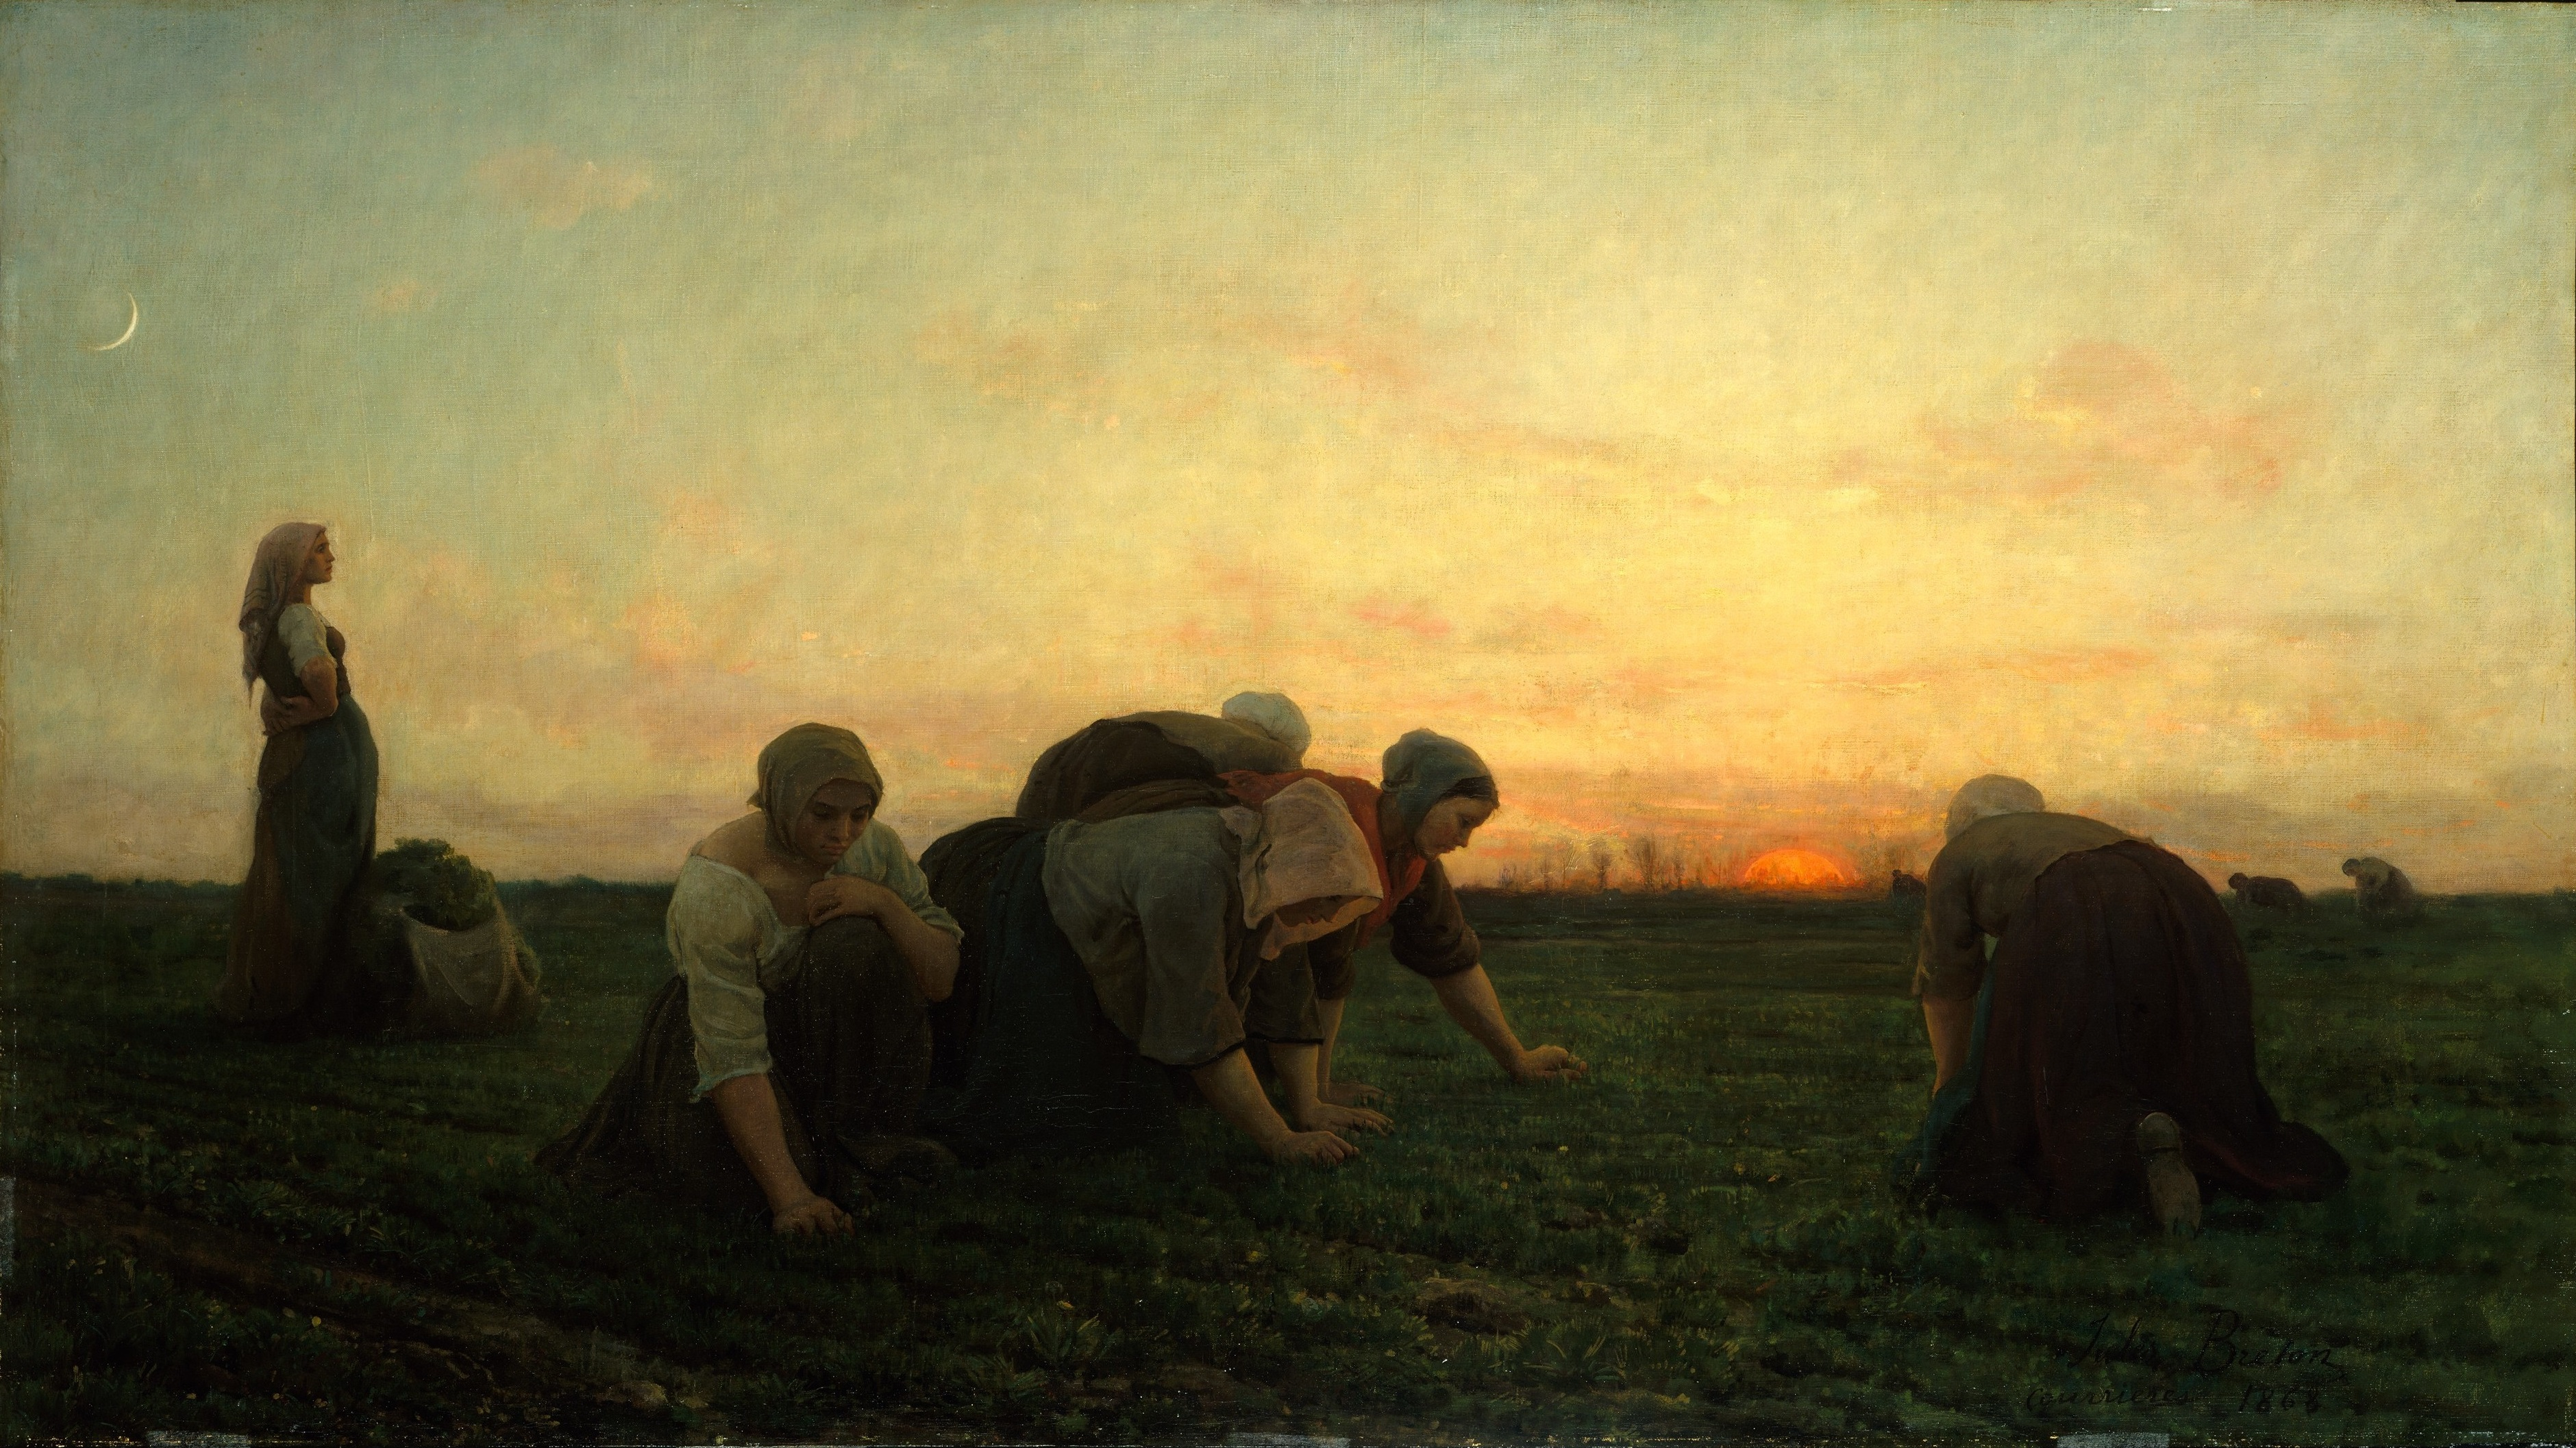 Jules_Breton_-_%27The_Weeders%27%2C_oil_on_canvas%2C_1868%2C_Metropolitan_Museum_of_Art.jpg